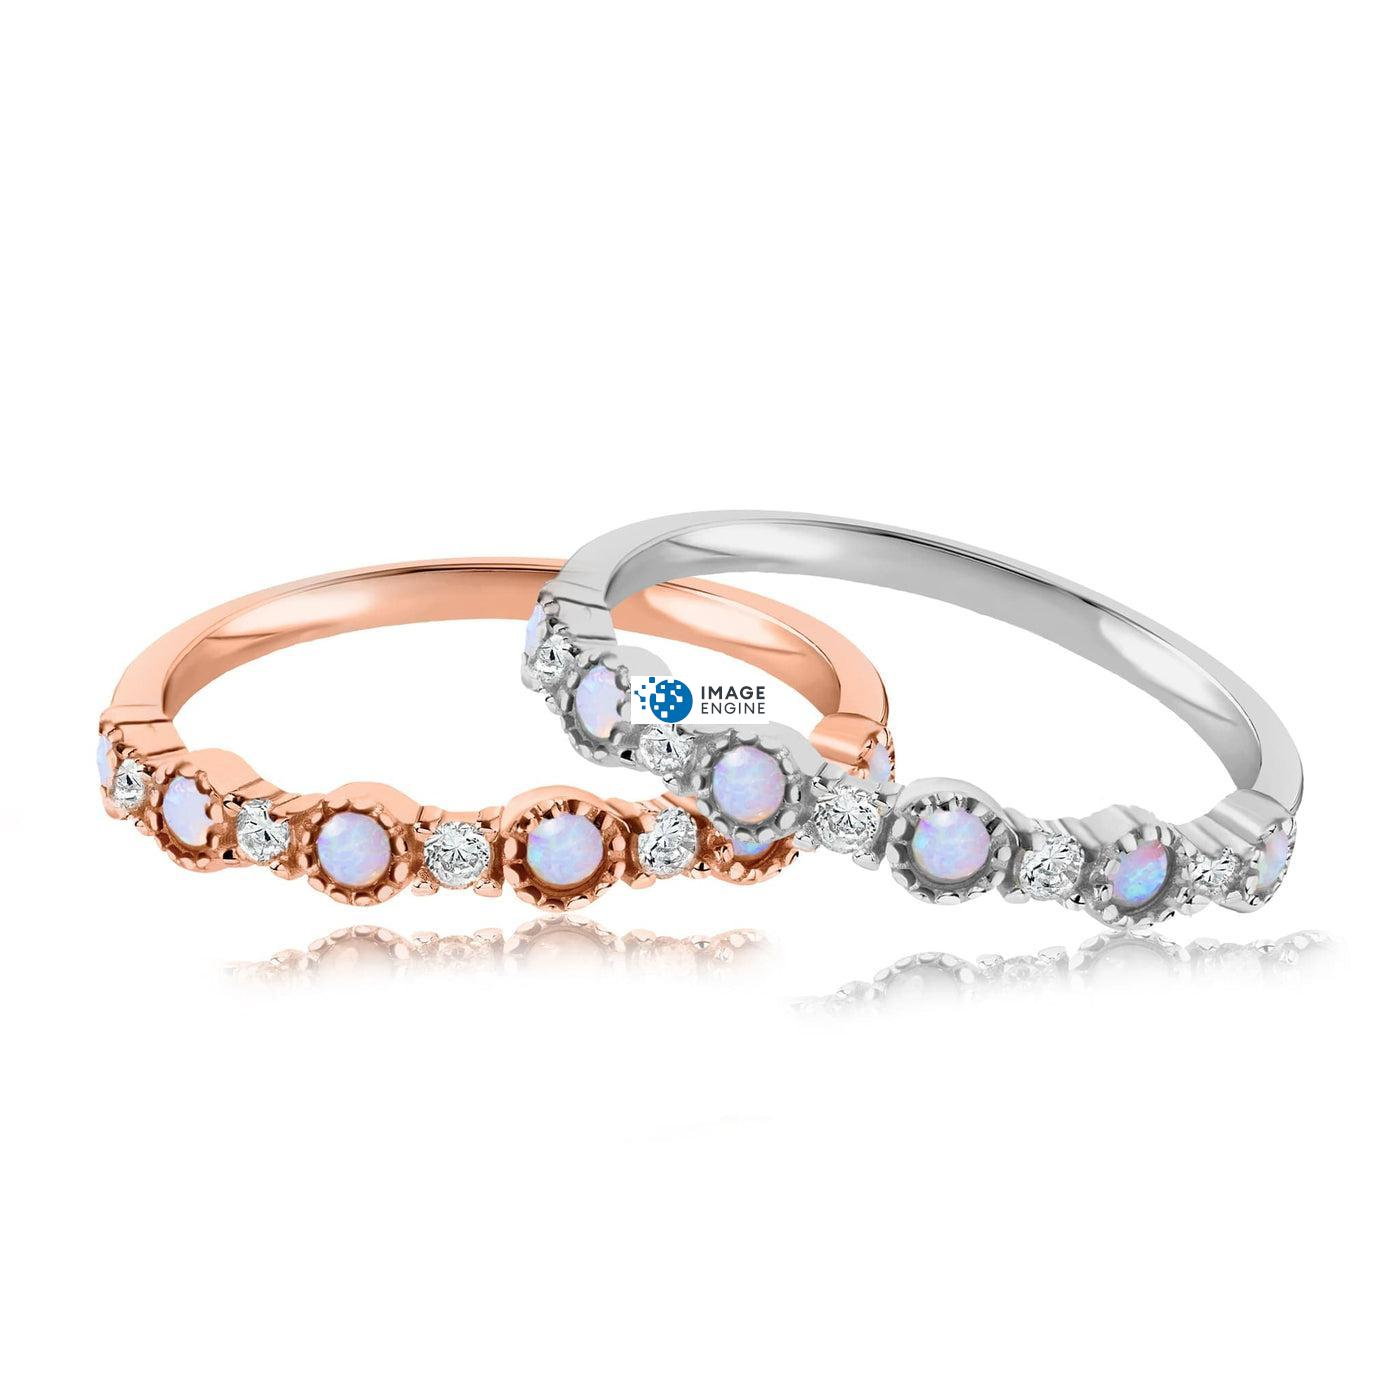 Debra Dots Opal Ring - Front View Side by Side - 18K Rose Gold Vermeil and 925 Sterling Silver